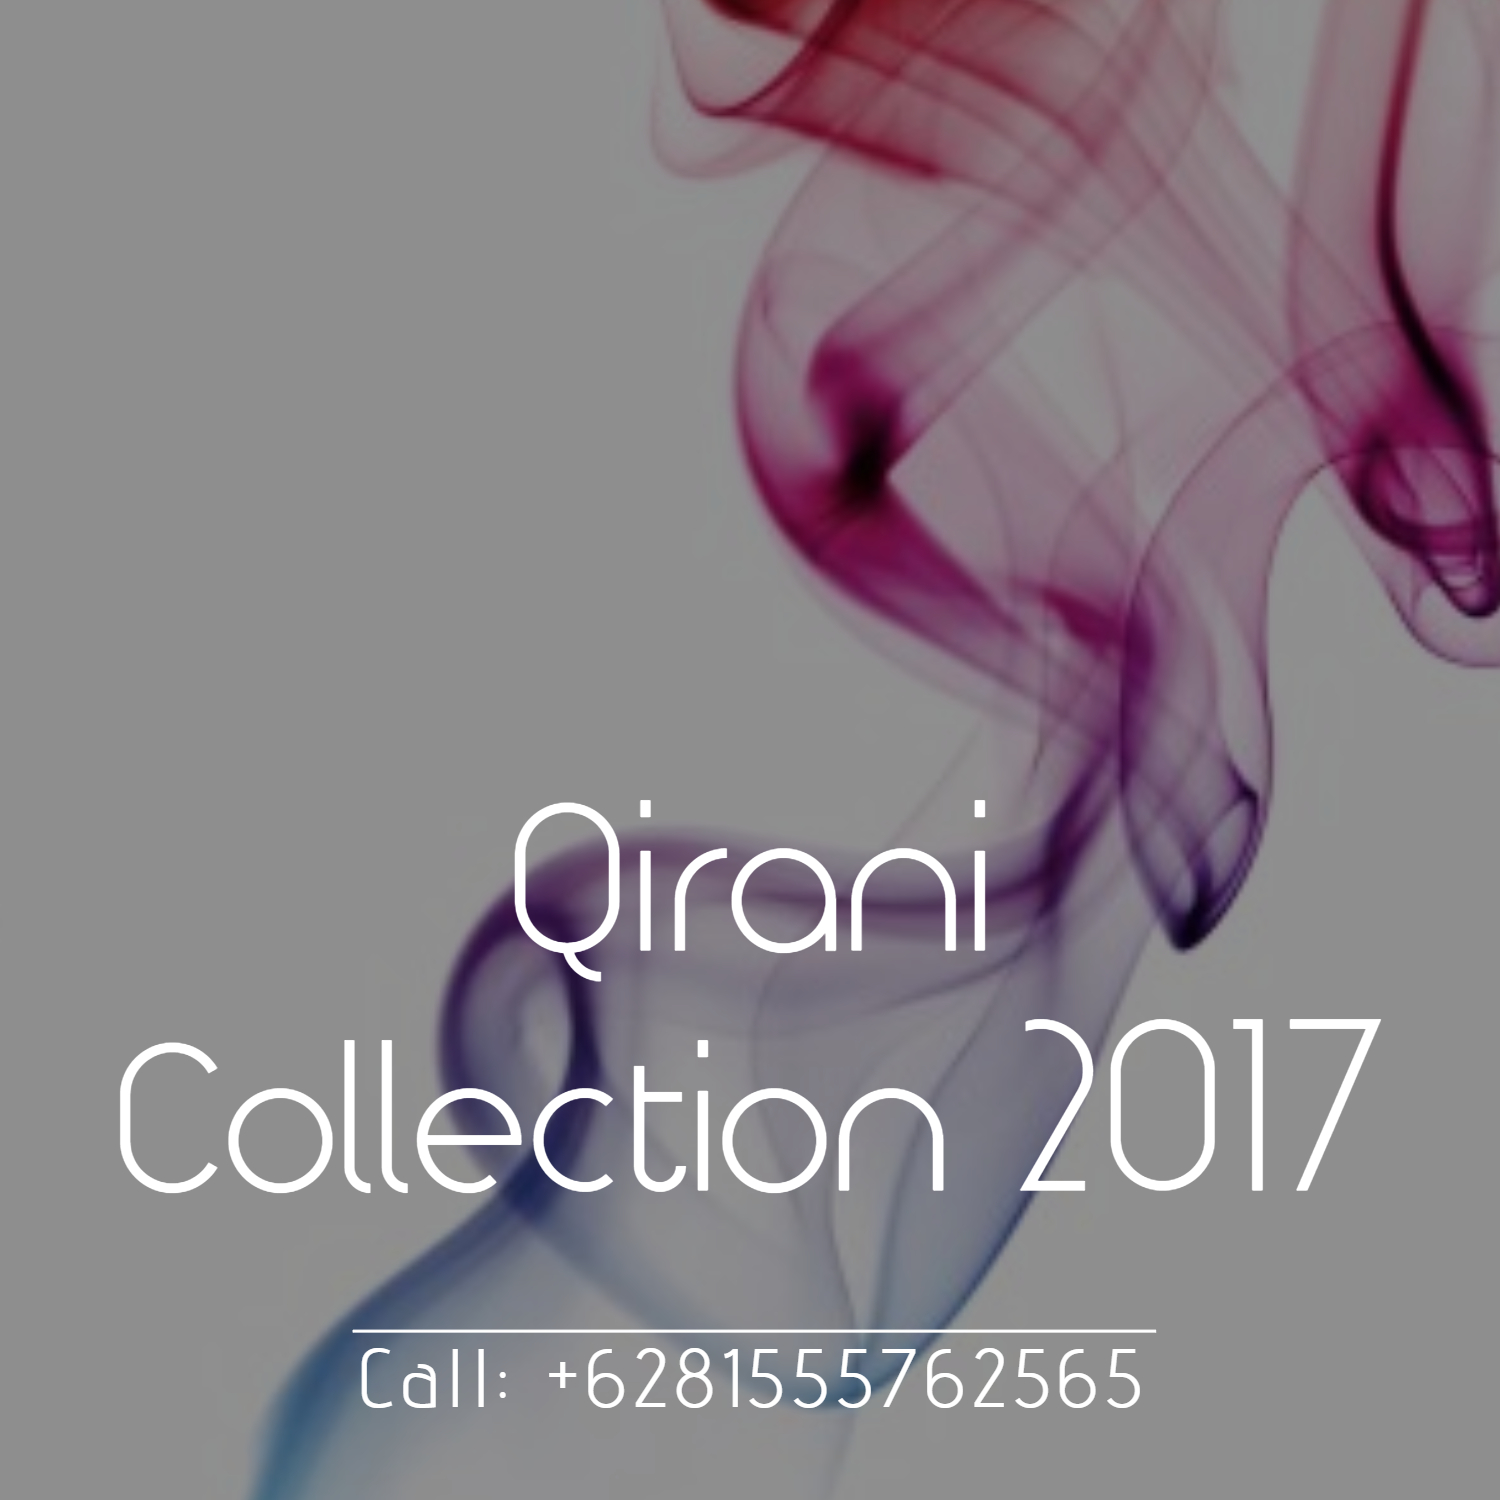 Qirani Collection 2017